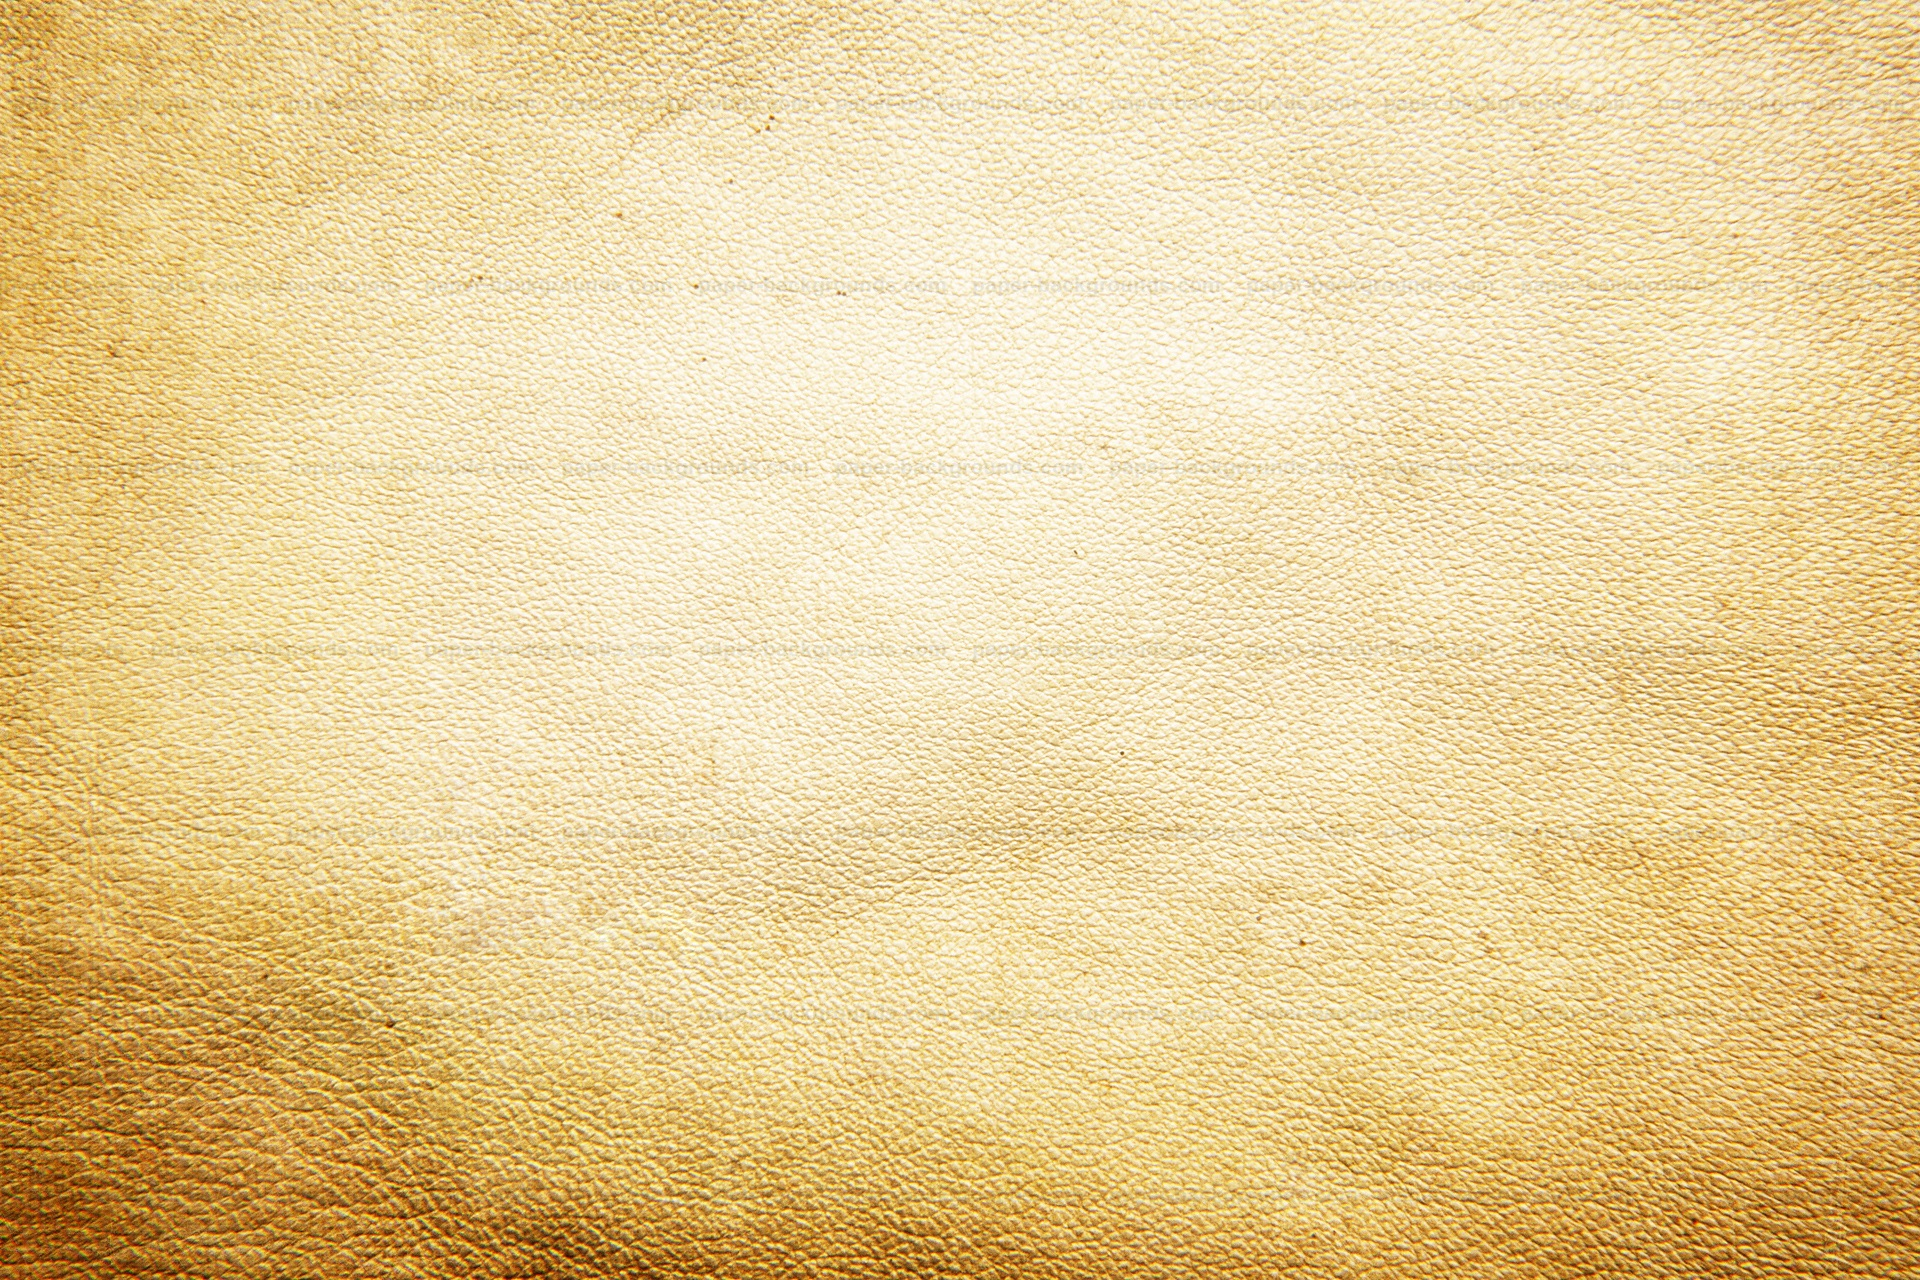 Grunge Leather Background Texture HD